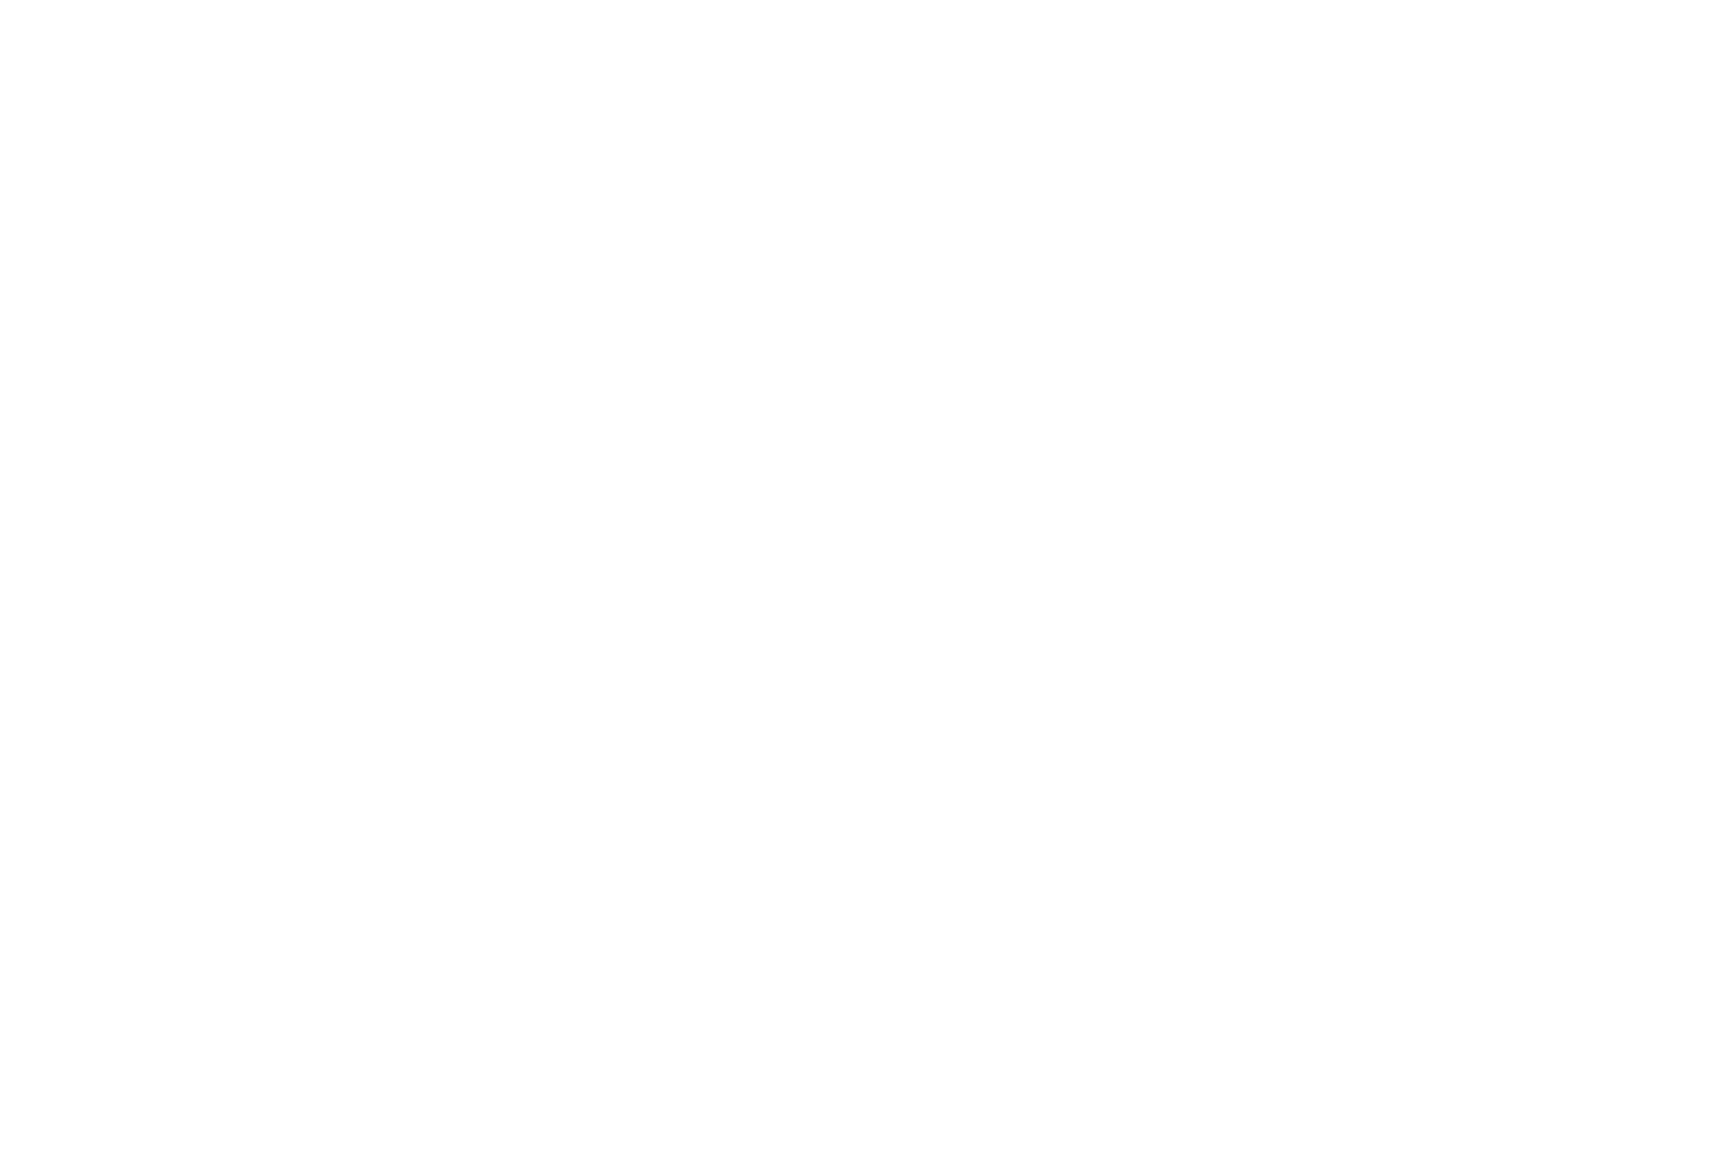 BEST DIRECTOR  - Yh Mourhia Wright  - NEWARK INTERNATIONAL FILM FESTIVAL.png